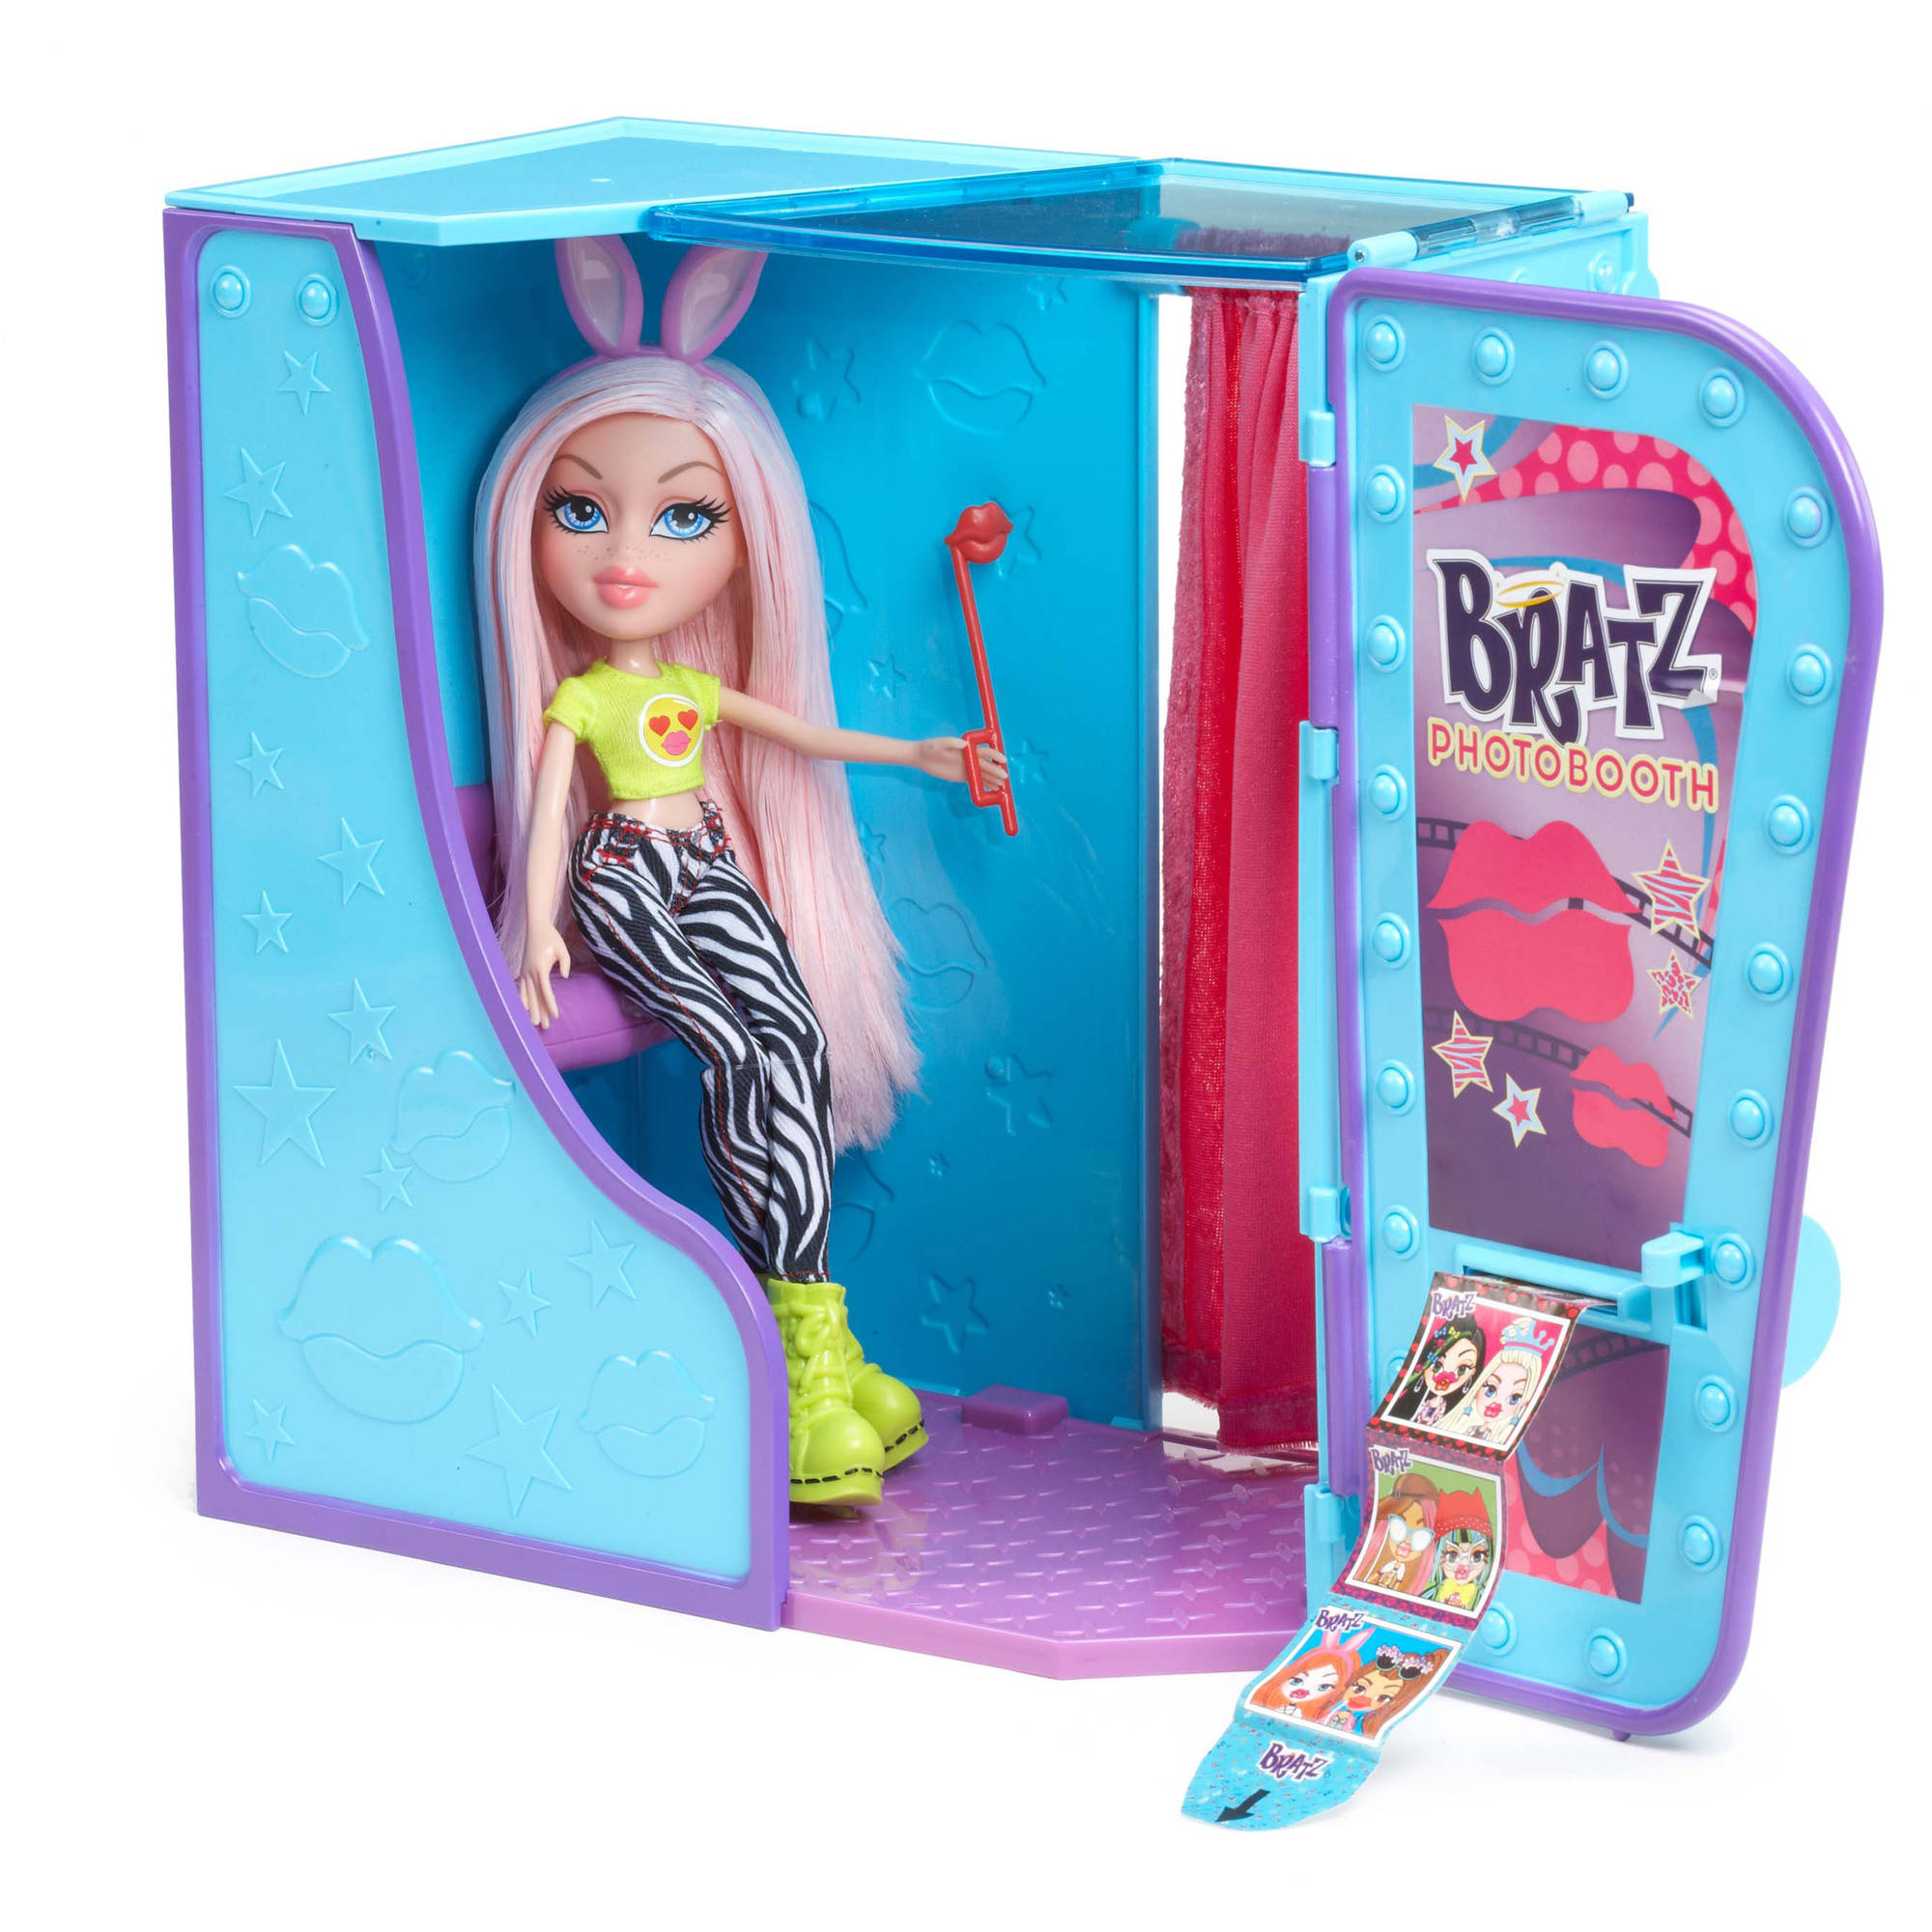 Bratz #SelfieSnaps Photobooth with Doll